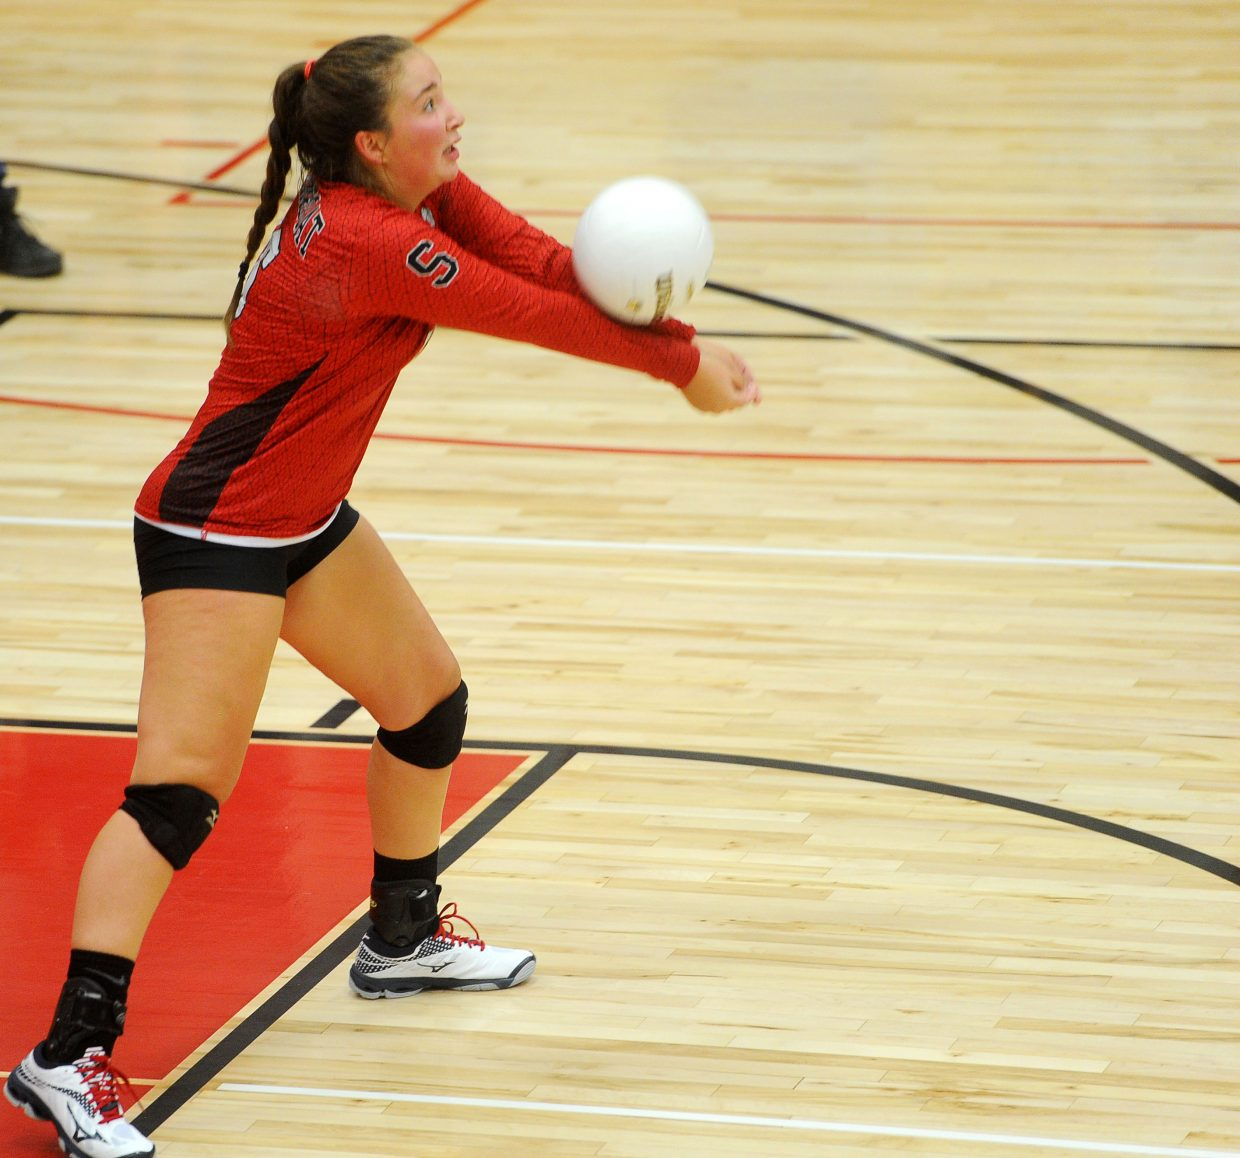 Senior libero Katelyn Kline lines up a dig against Moffat County on Aug. 23. Hall said that Kline showed consistency in her varsity tournament debut at Glenwood Springs on Aug. 31 and Sept. 1.